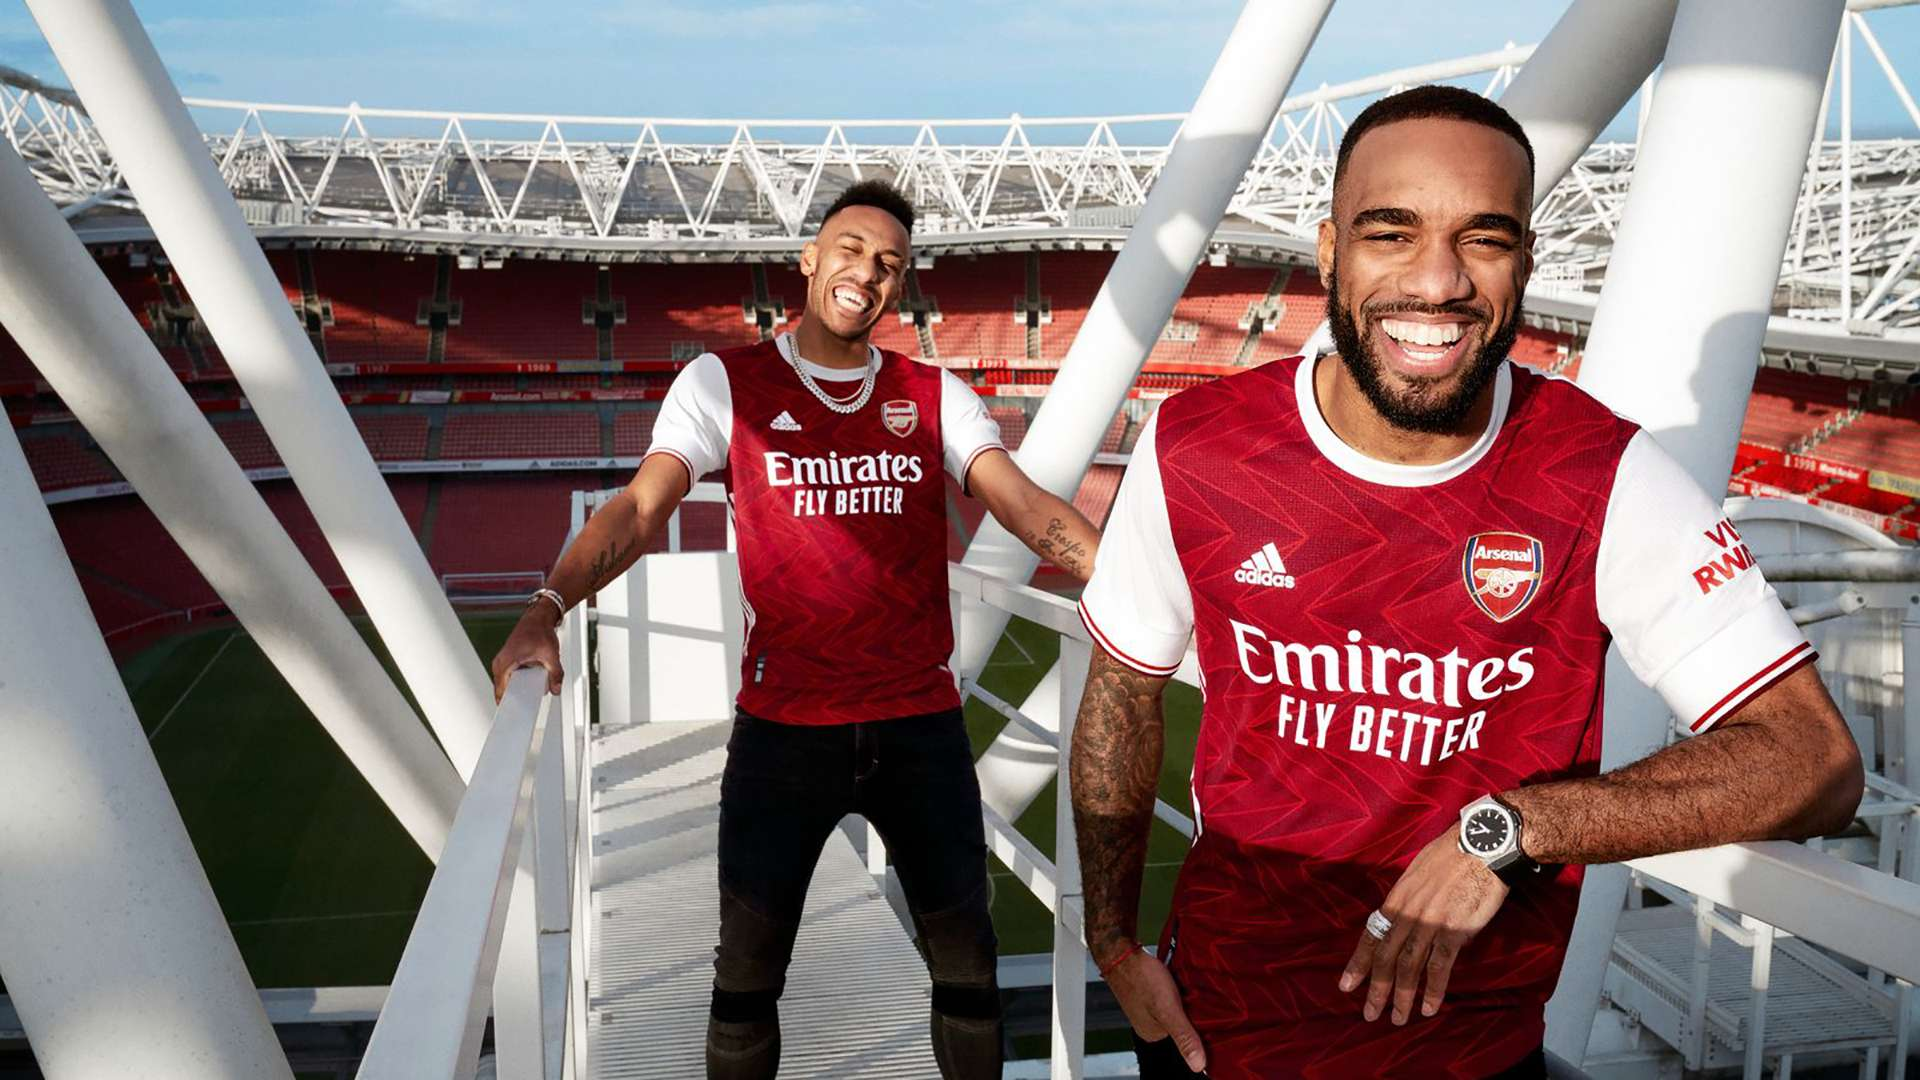 Arsenal S 2020 21 Kit New Home And Away Jersey Styles And Release Dates Goal Com